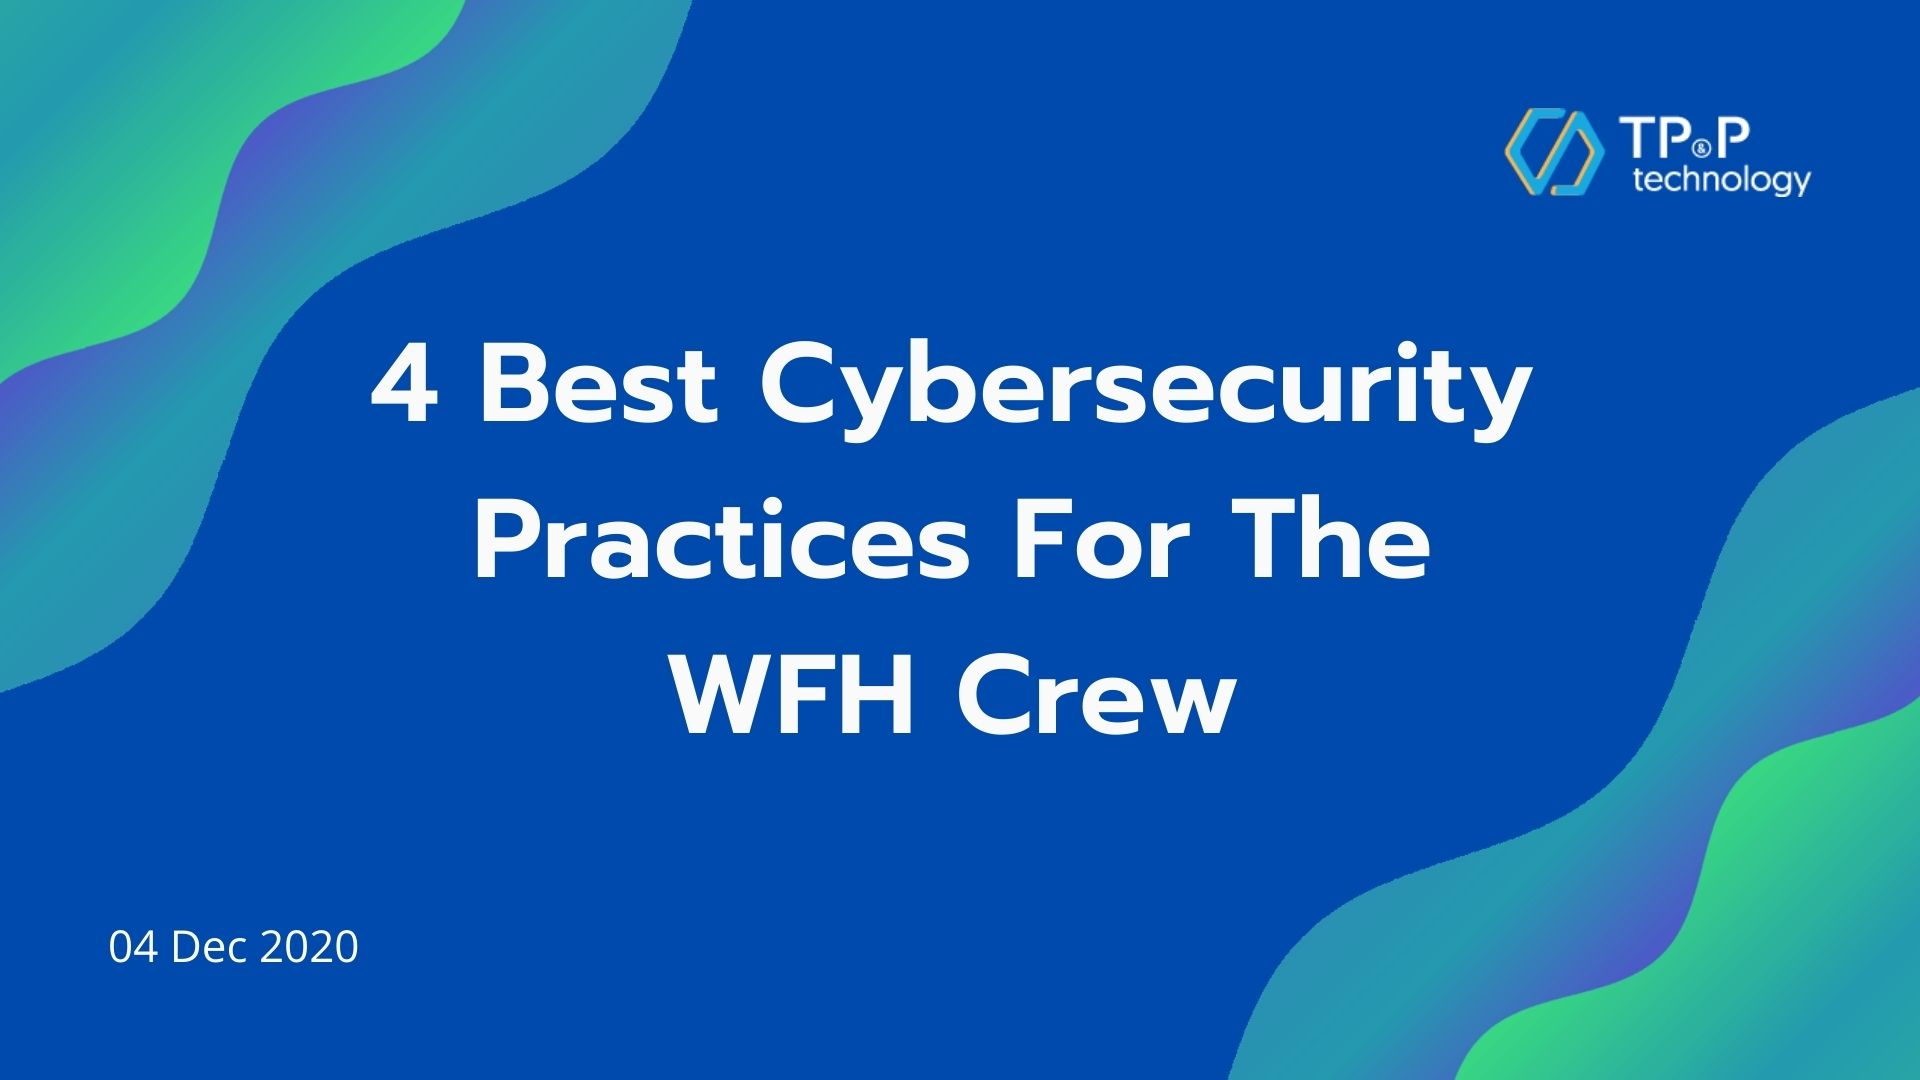 4 Best Cybersecurity Practices For The WFH Crew